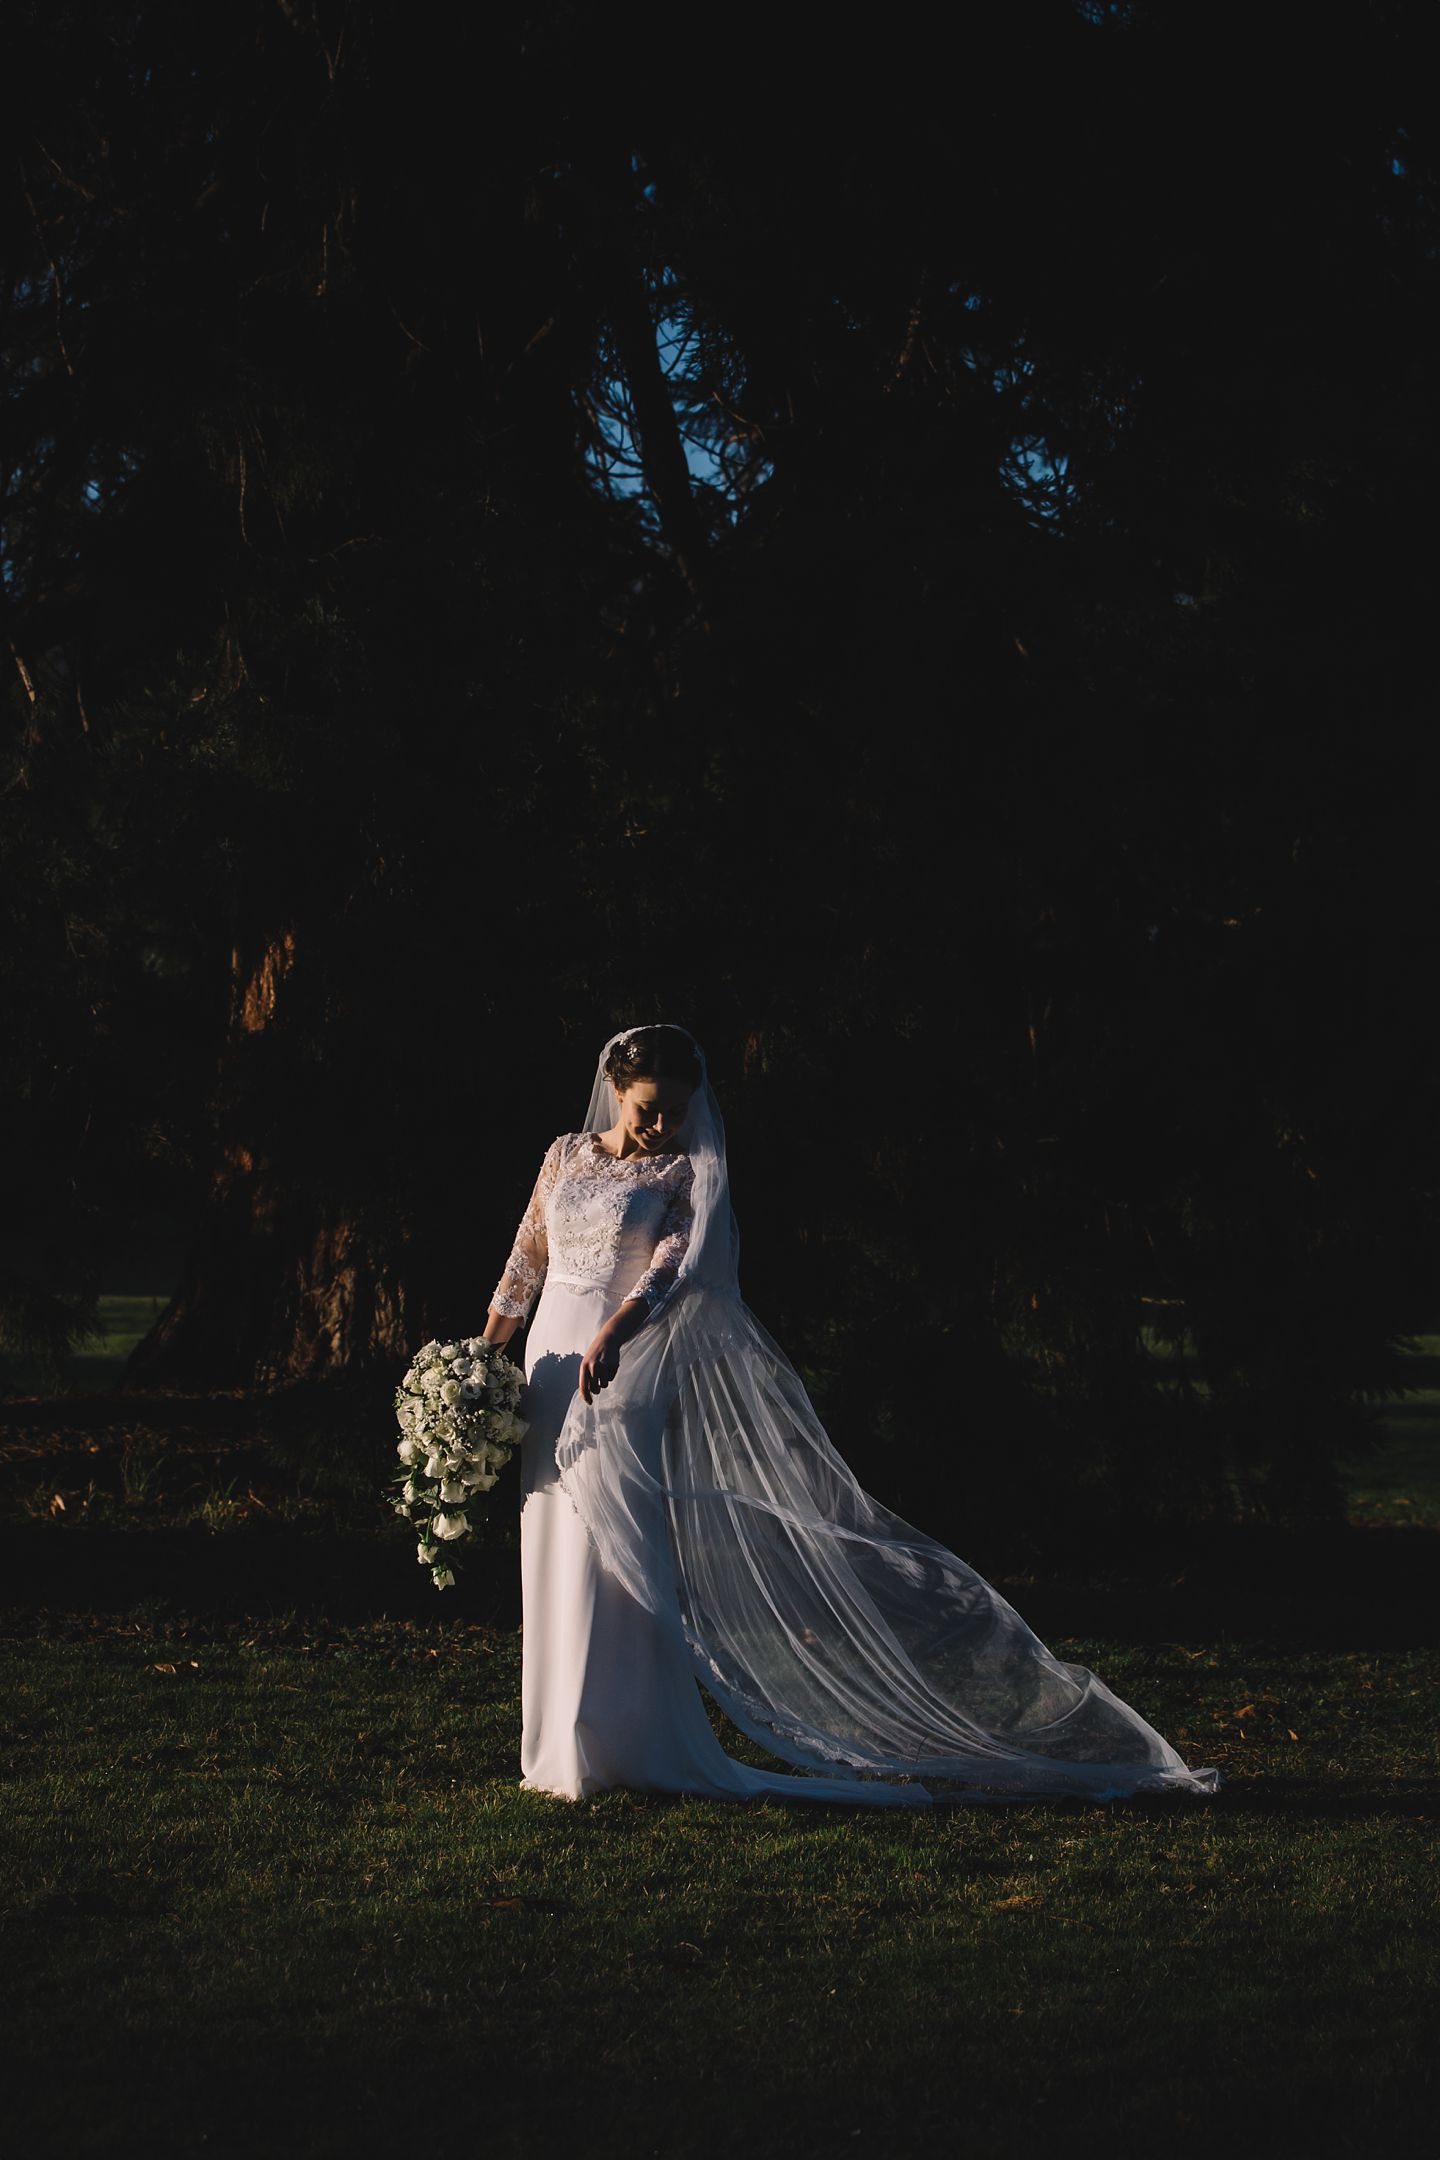 bridal-portrait-sunbury-court-wedding-photography-vanessa-adams